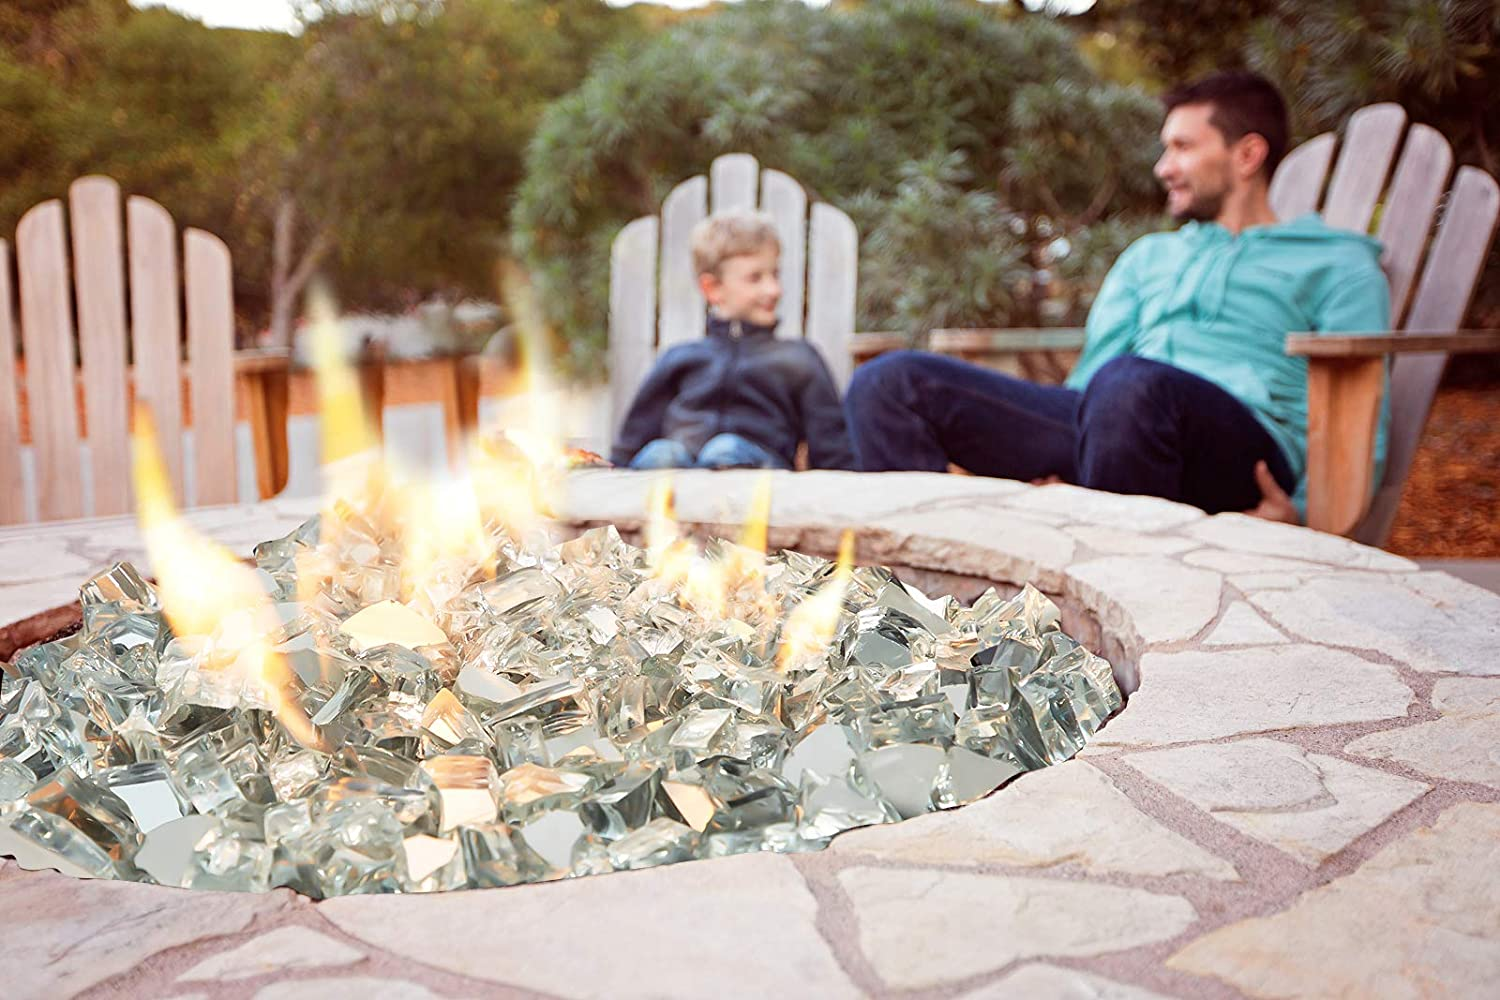 Cobalt Clear Reflective Clear U-MAX 10-Pound Reflective Fire Glass 1//2-inch Crushed Glass Lava Rocks for Polygon Fire Pit Fireplace Landscaping